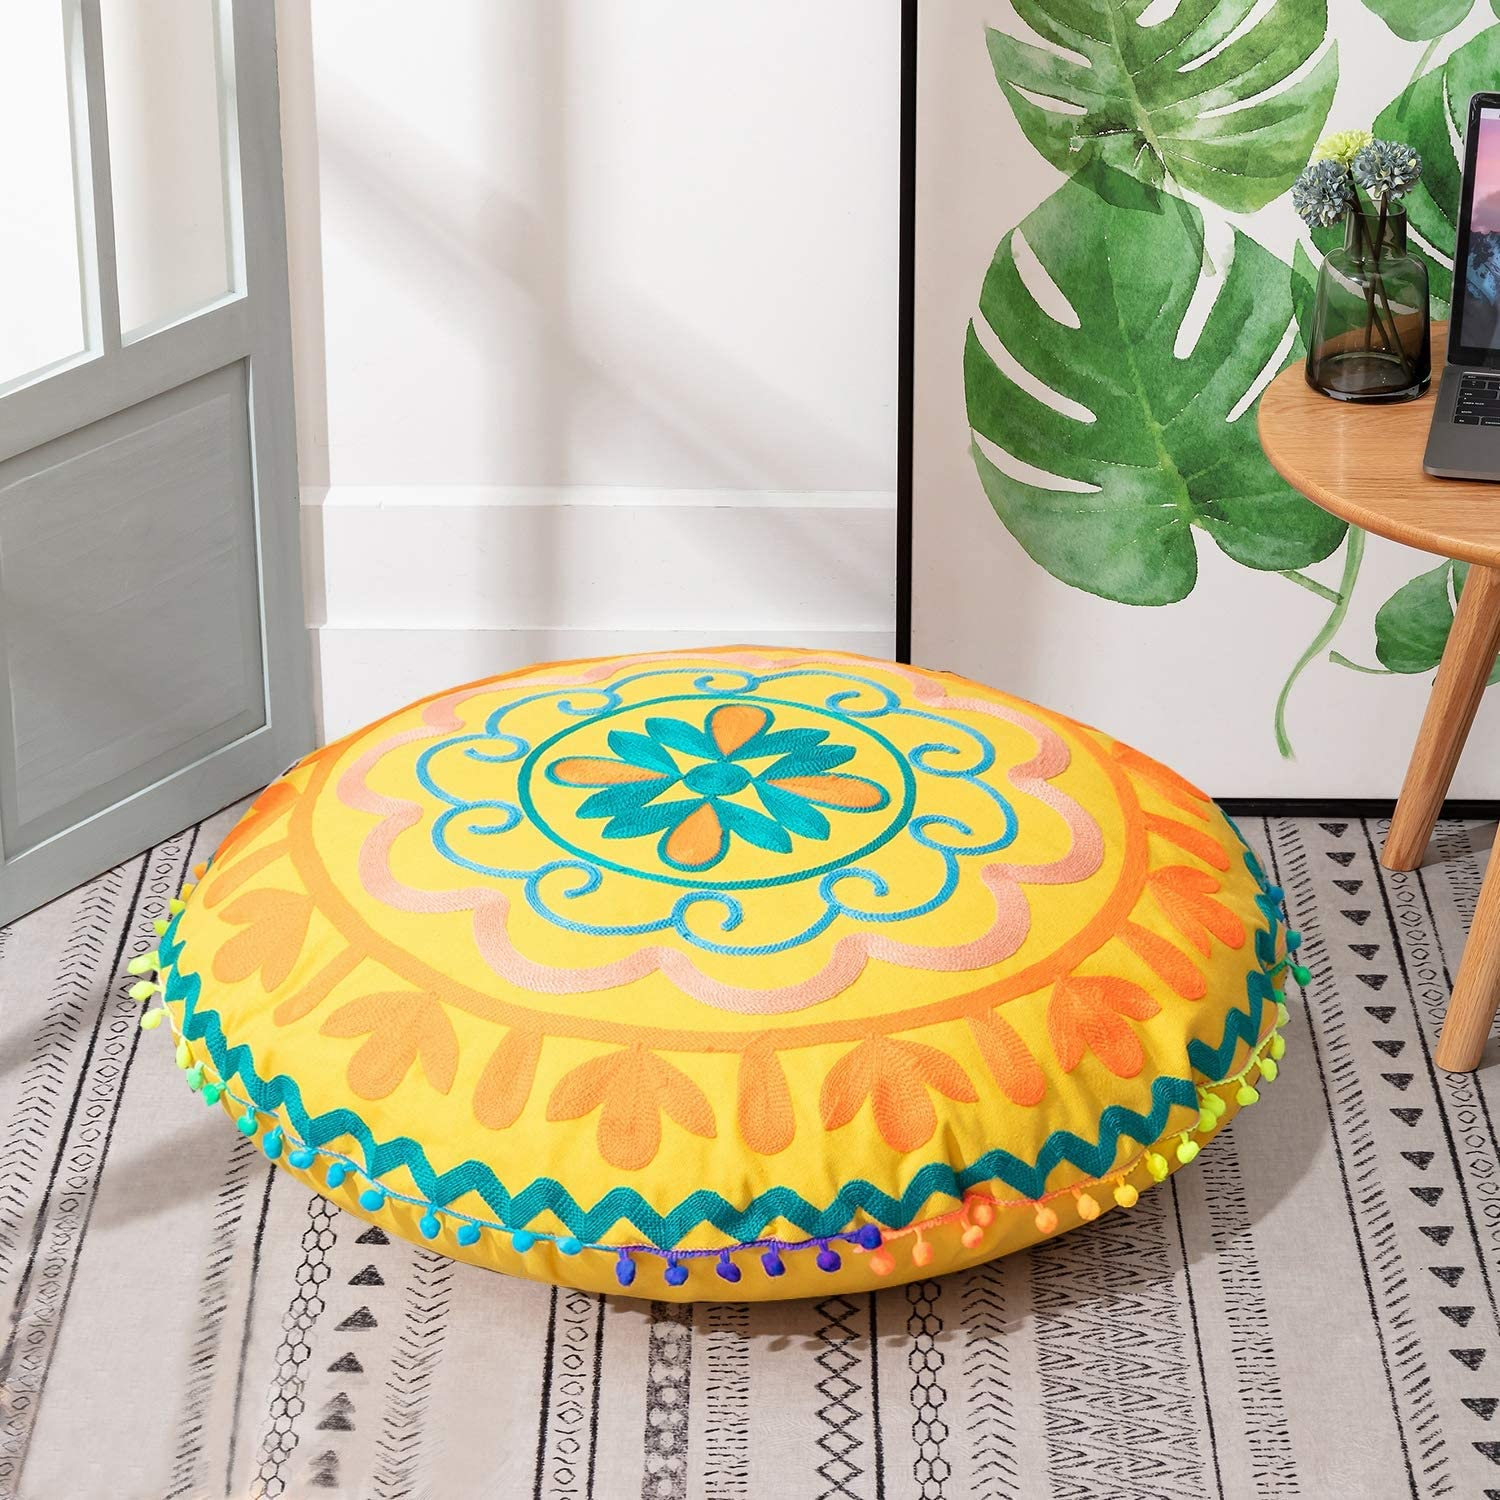 HIGOGOGO Round Embroidered Floor Pillow, Bohemian Indian Mandala Floor Cushion with Pom-Pom Tassel, Zipped Bohemian Meditation Seating Stuffed Pouf Removable Cover for Living Room, Yellow, 22 Inch